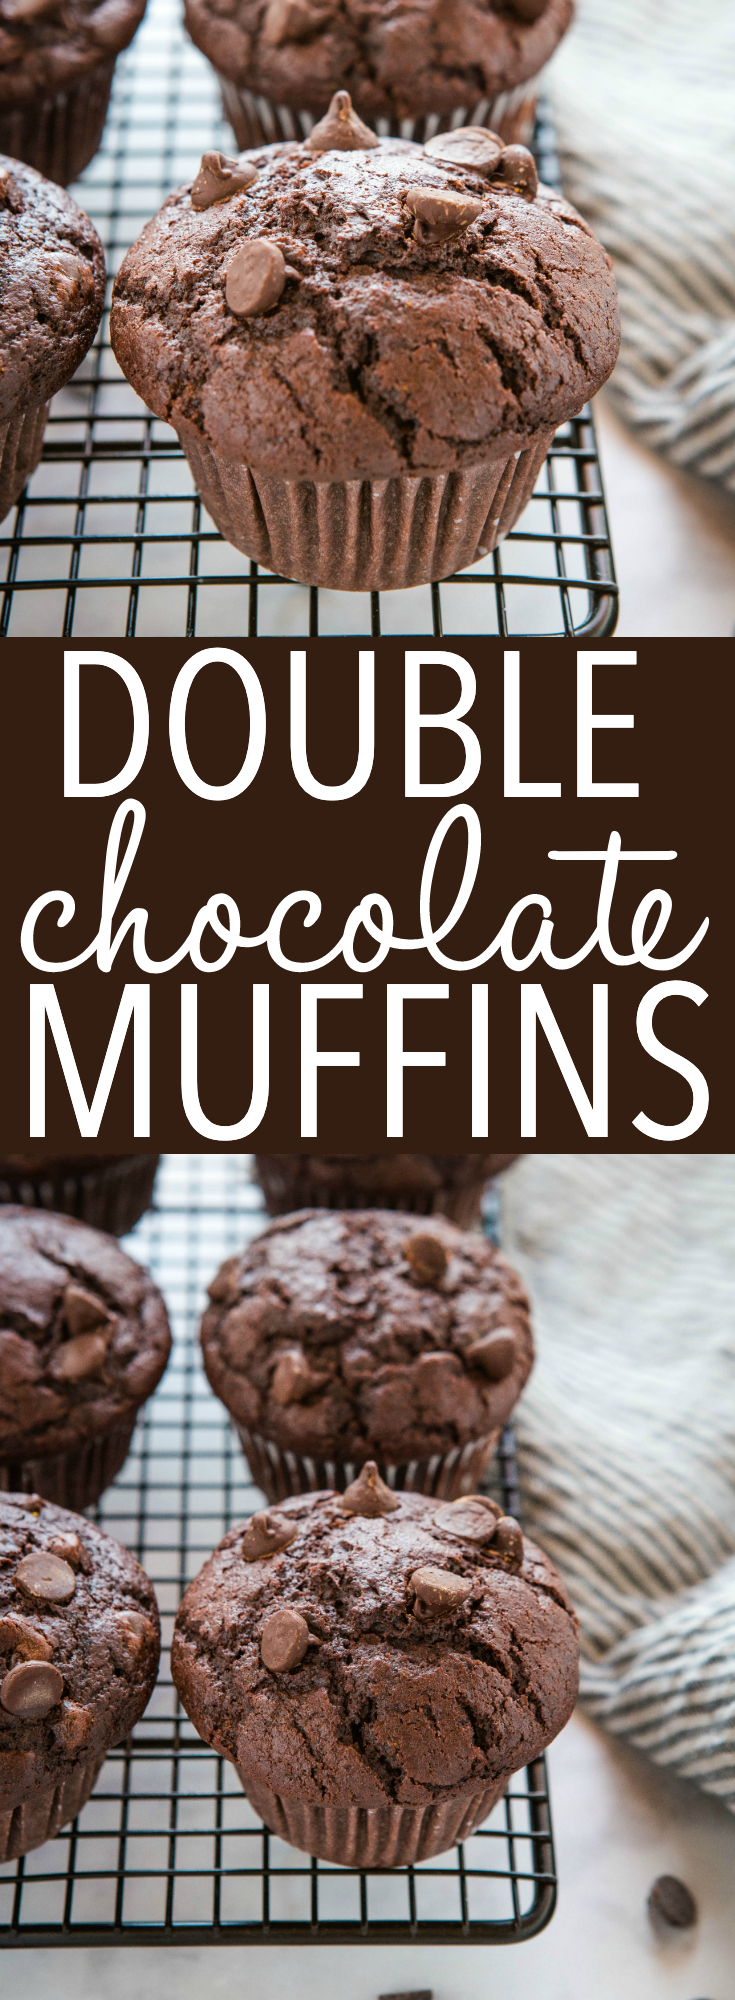 These Best Ever Double Chocolate Muffins are moist and chocolatey, and packed with chocolate chips! Easy to make in only one bowl! Recipe from thebusbaker.ca! #chocolate #doublechocolate #muffins #baking #afterschool #cake #recipe via @busybakerblog